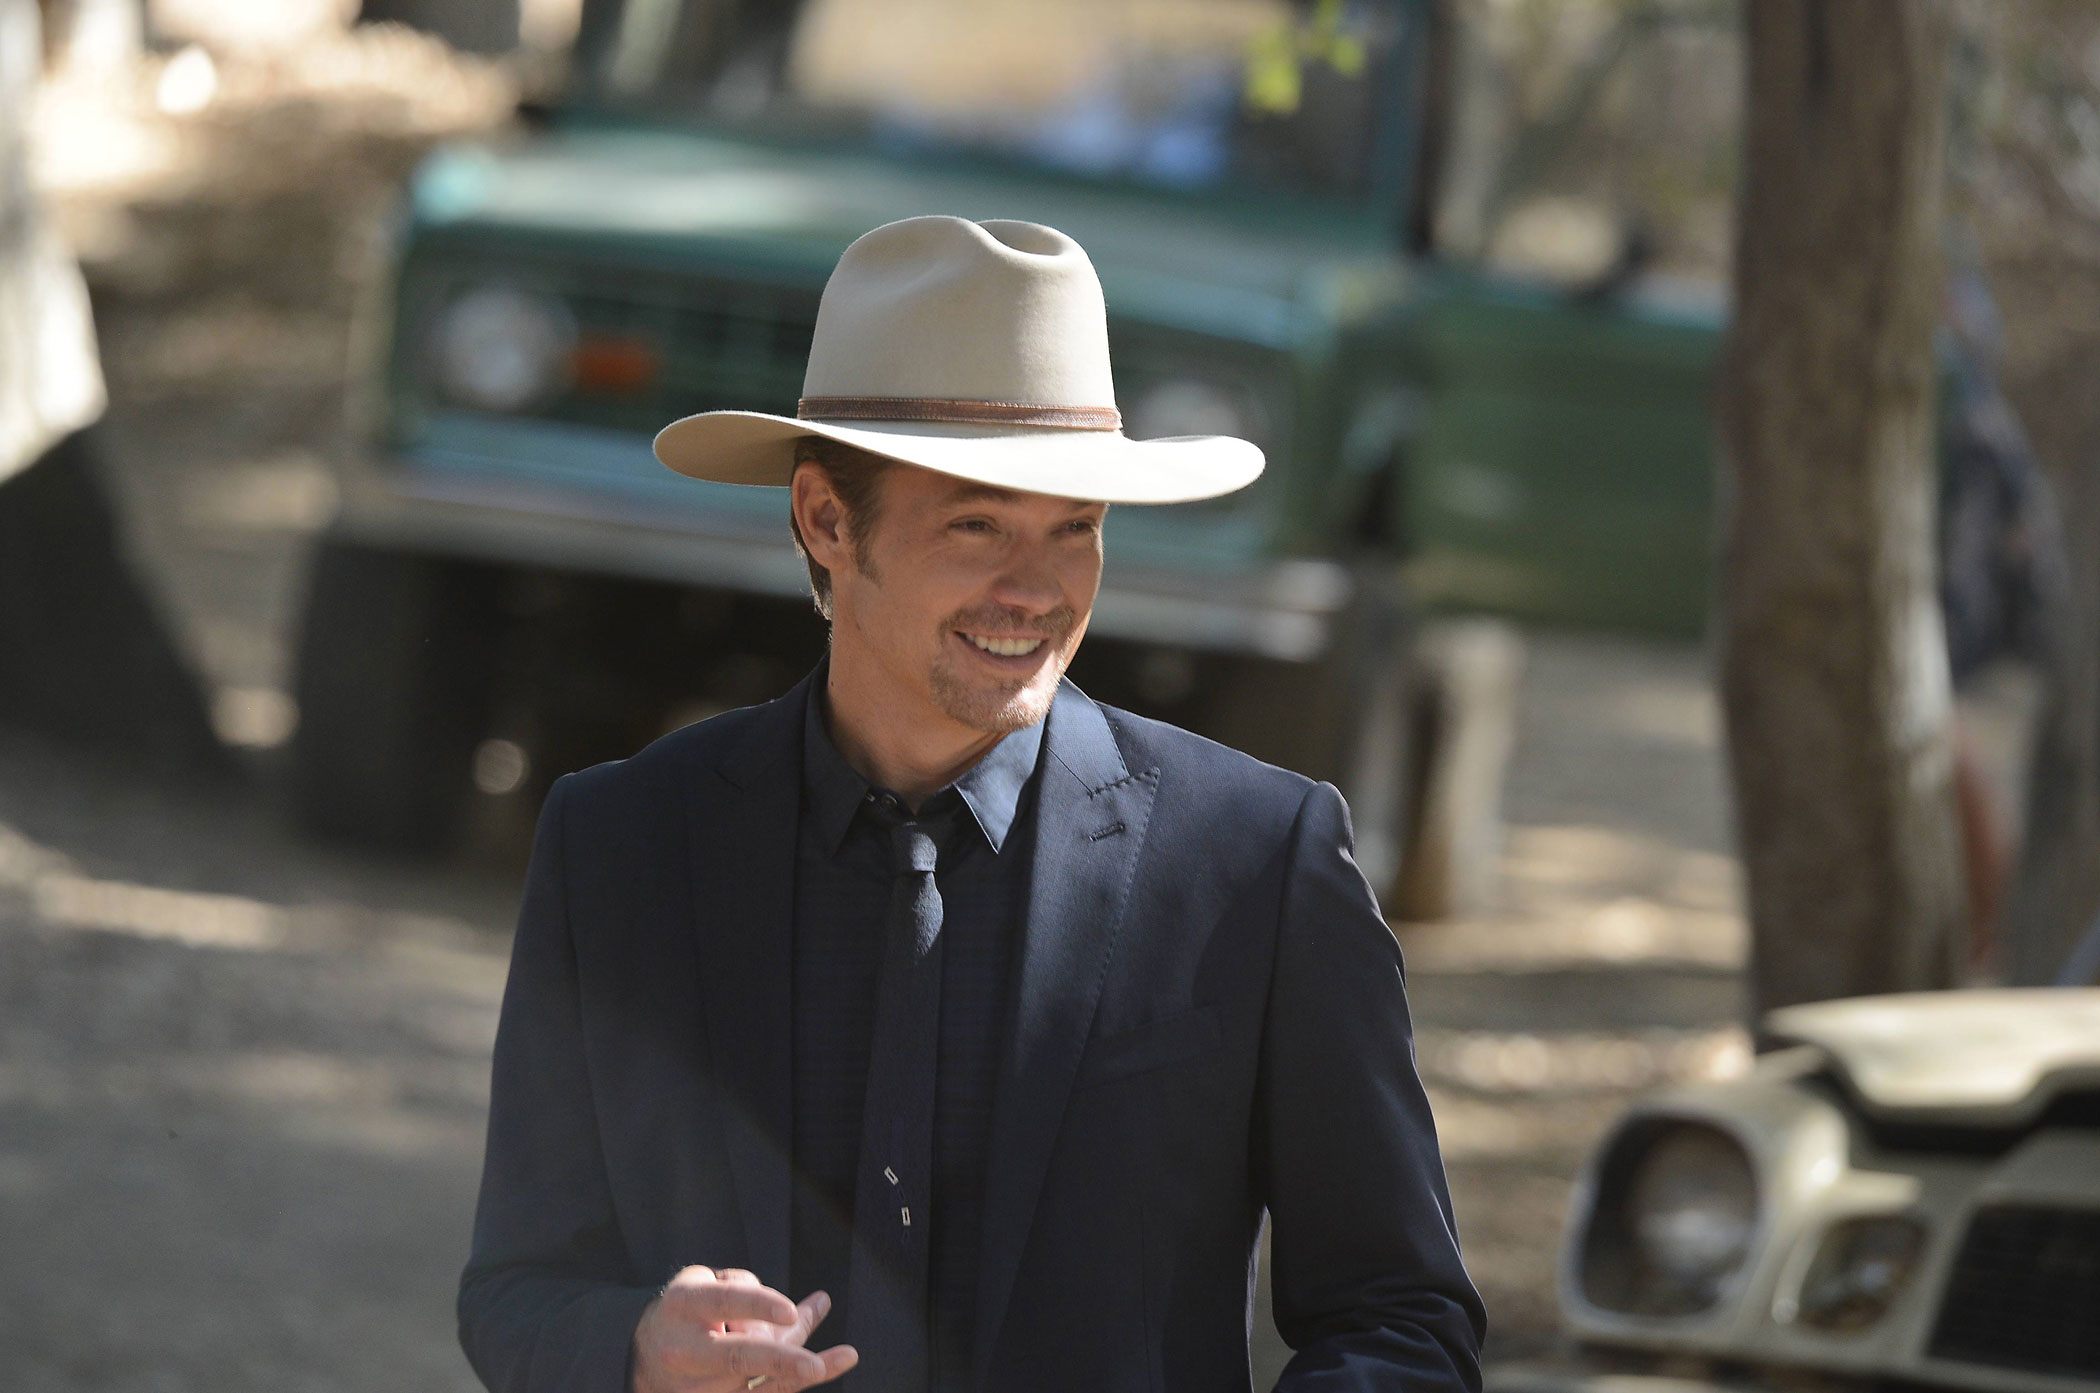 Timothy Olyphant as Deputy U.S. Marshal Raylan Givens in Justified